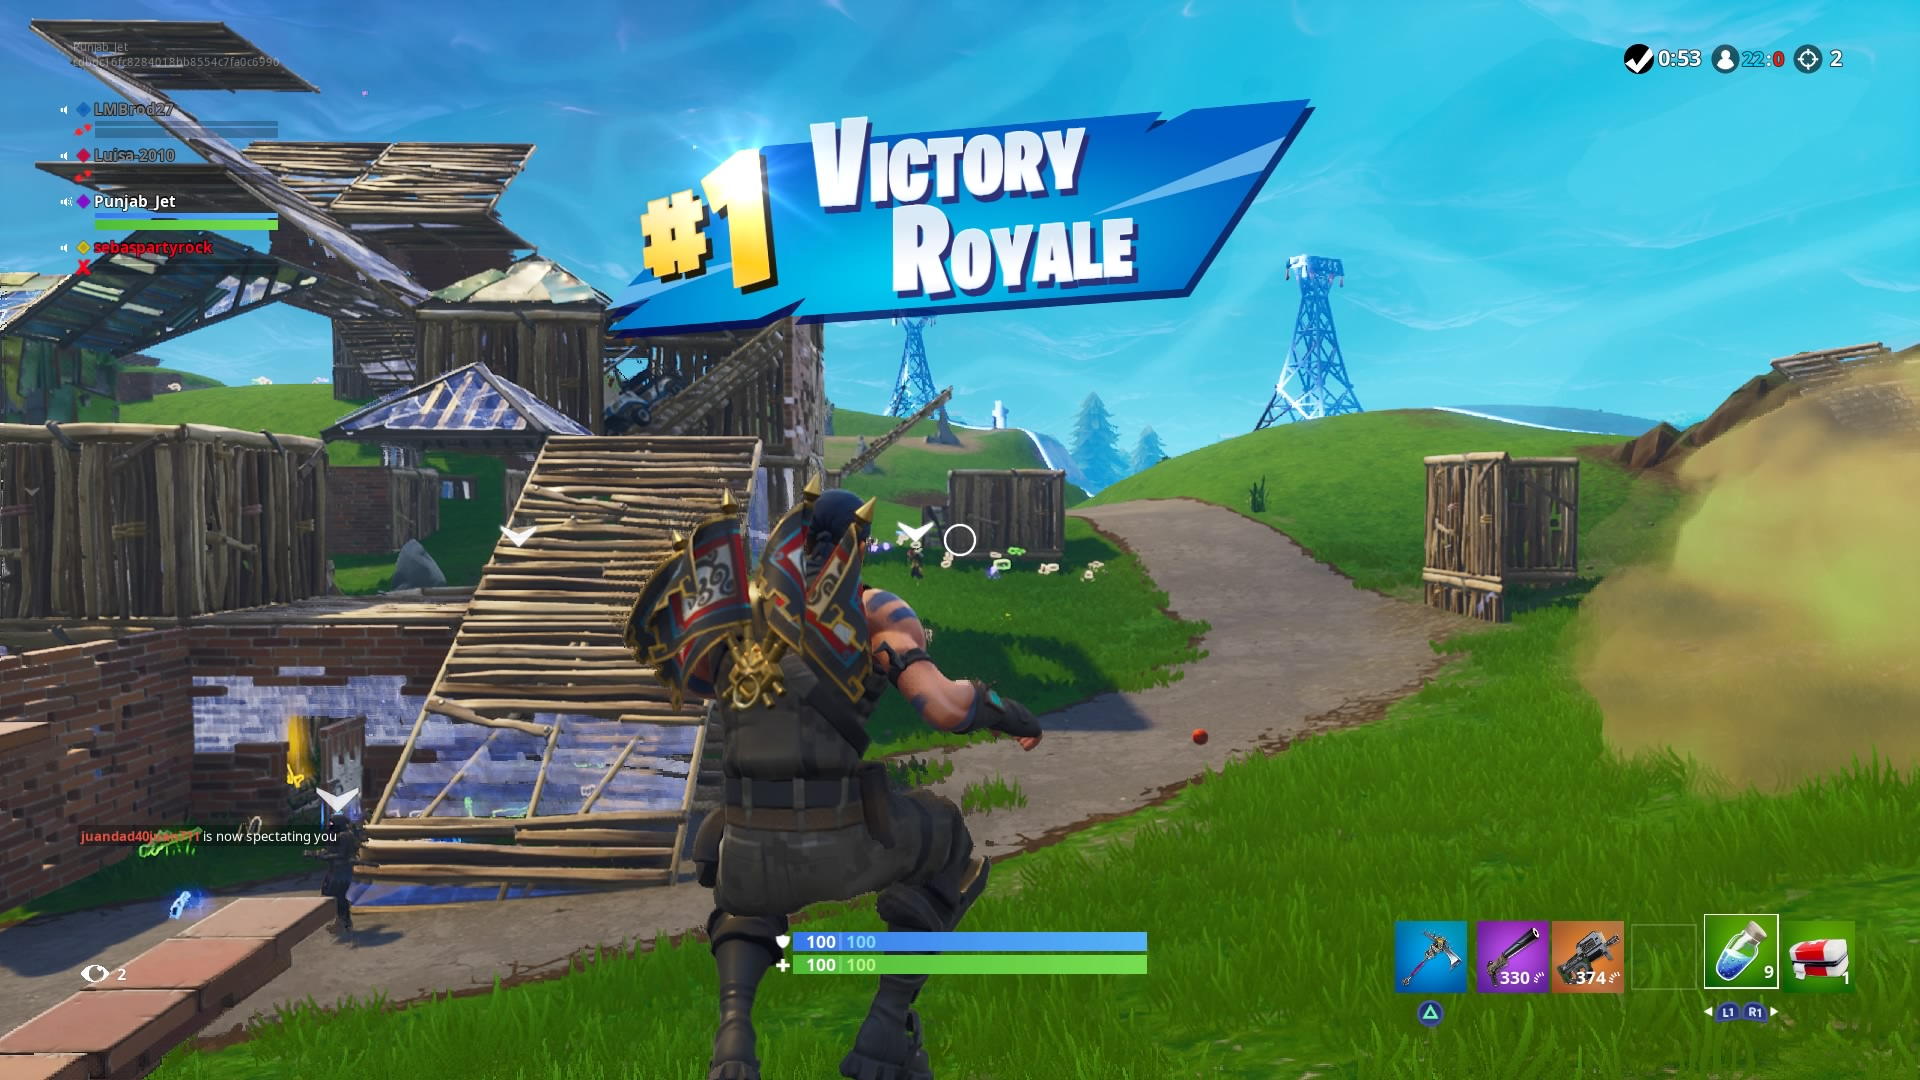 Fortnite Victory Royale P90 Gun Widescreen Desktop Wallpaper 1534 1920x1080 Px Pickywallpapers Com